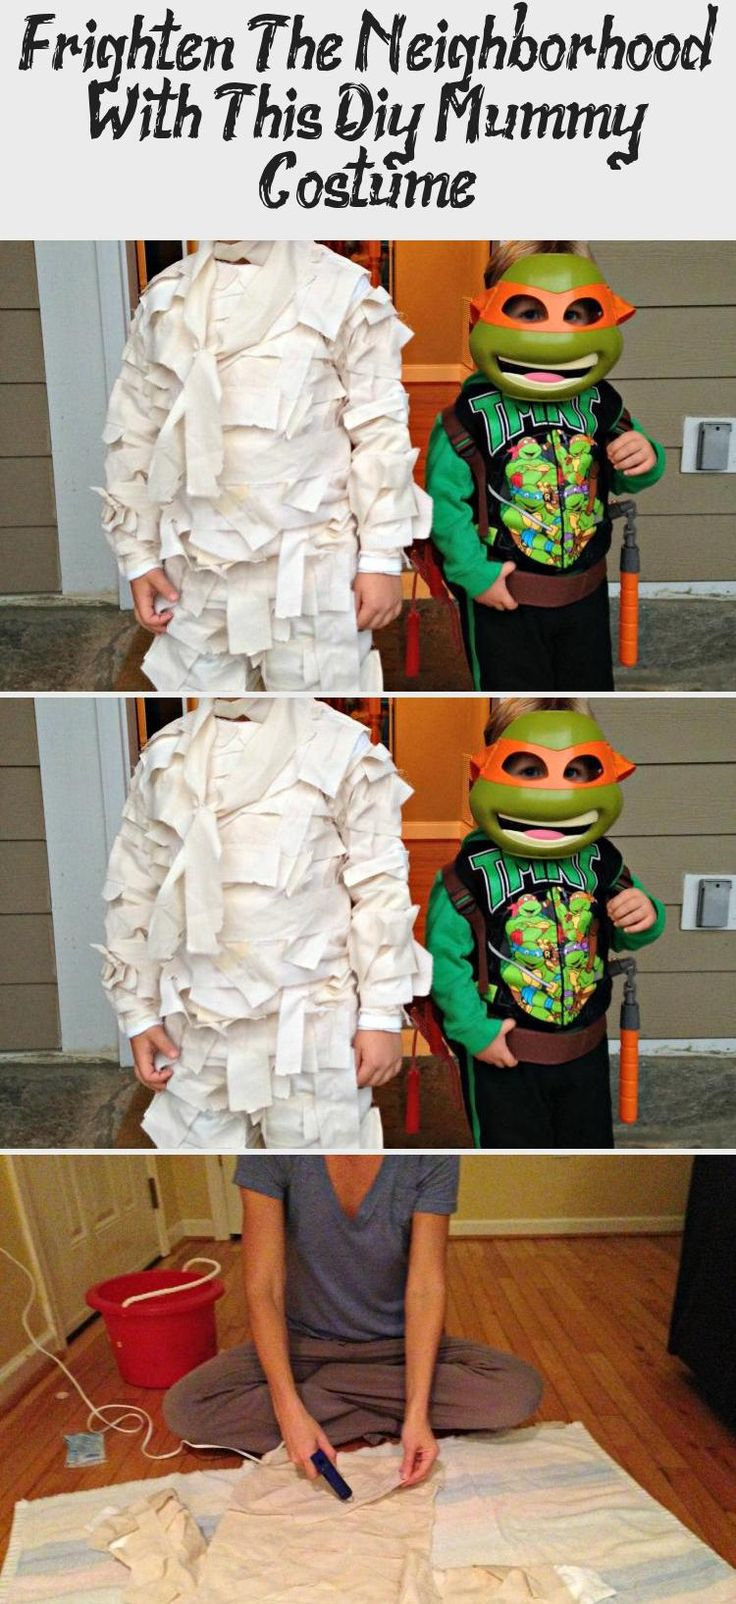 My Blog En Blog in 2020 Diy mummy costume, Mummy